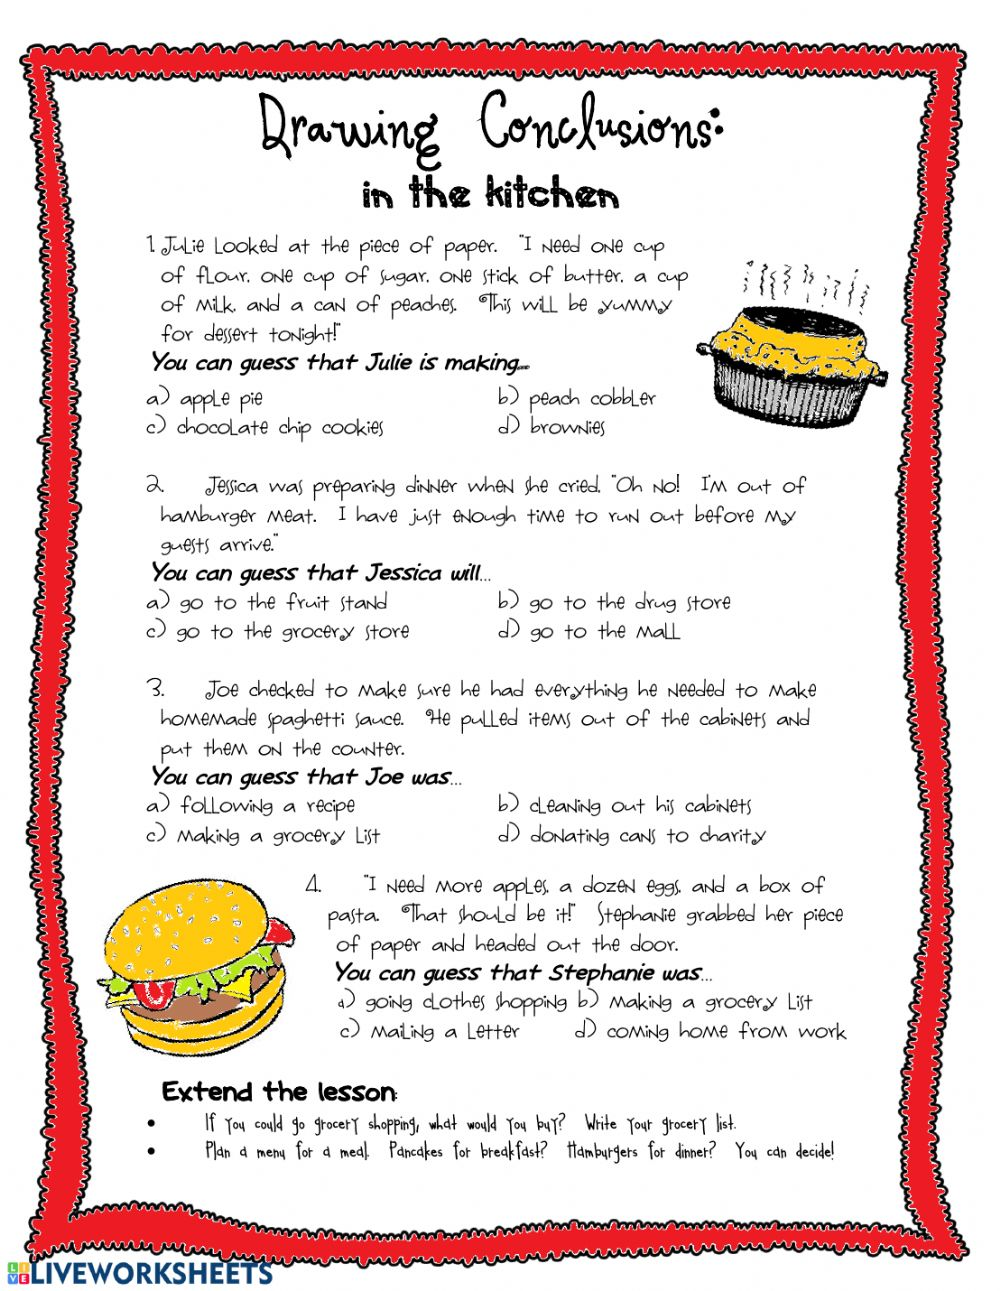 medium resolution of Drawing Conclusions: In the kitchen worksheet